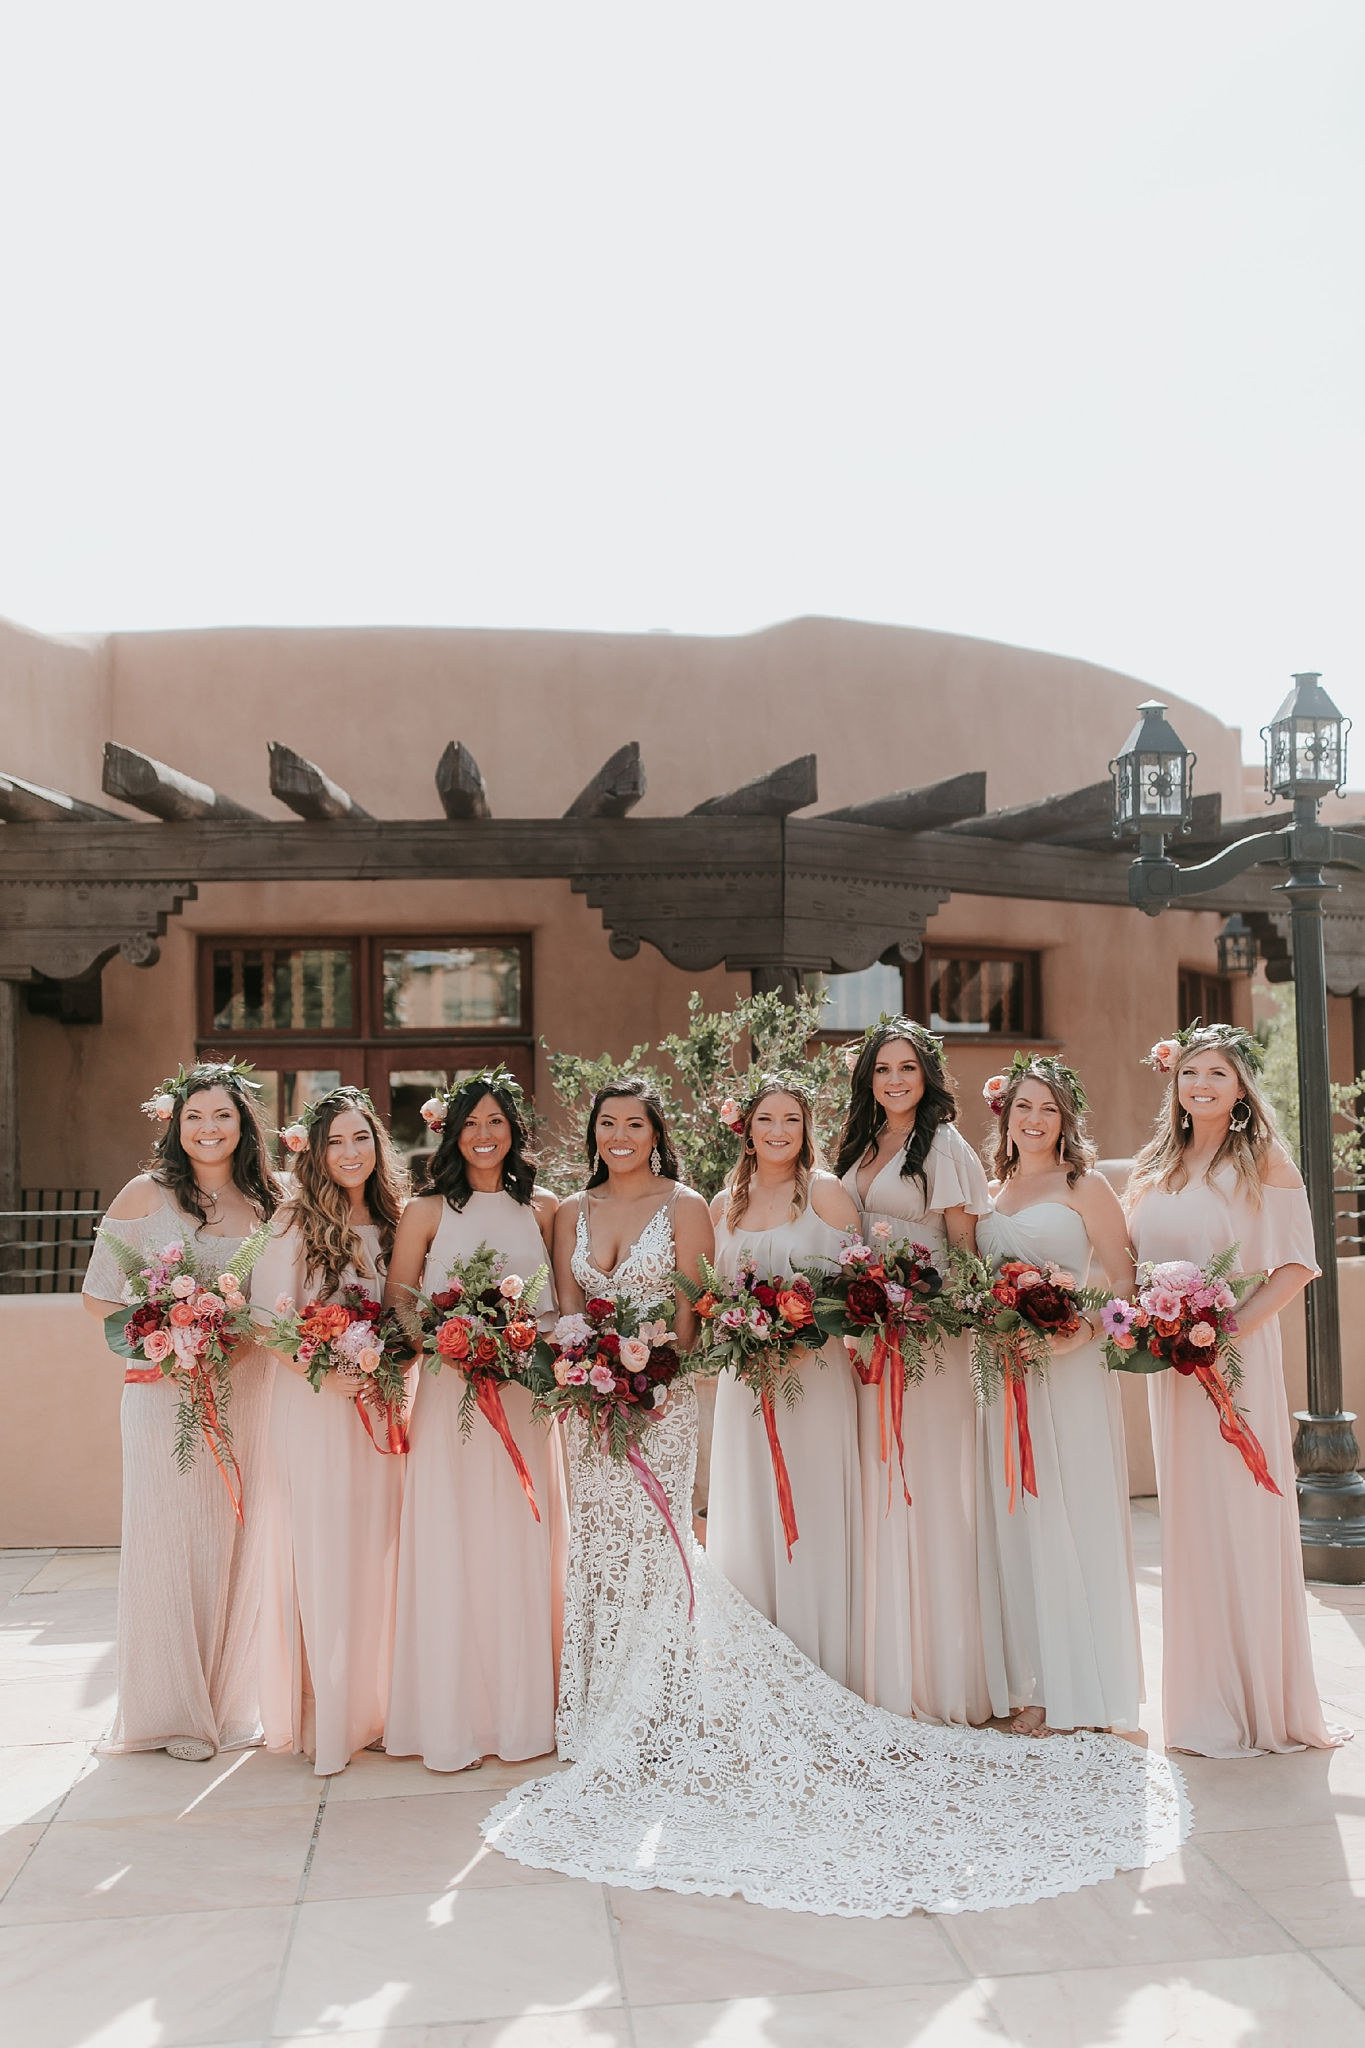 Alicia+lucia+photography+-+albuquerque+wedding+photographer+-+santa+fe+wedding+photography+-+new+mexico+wedding+photographer+-+new+mexico+wedding+-+new+mexico+wedding+-+colorado+wedding+-+bridesmaids+-+bridesmaid+style_0044.jpg